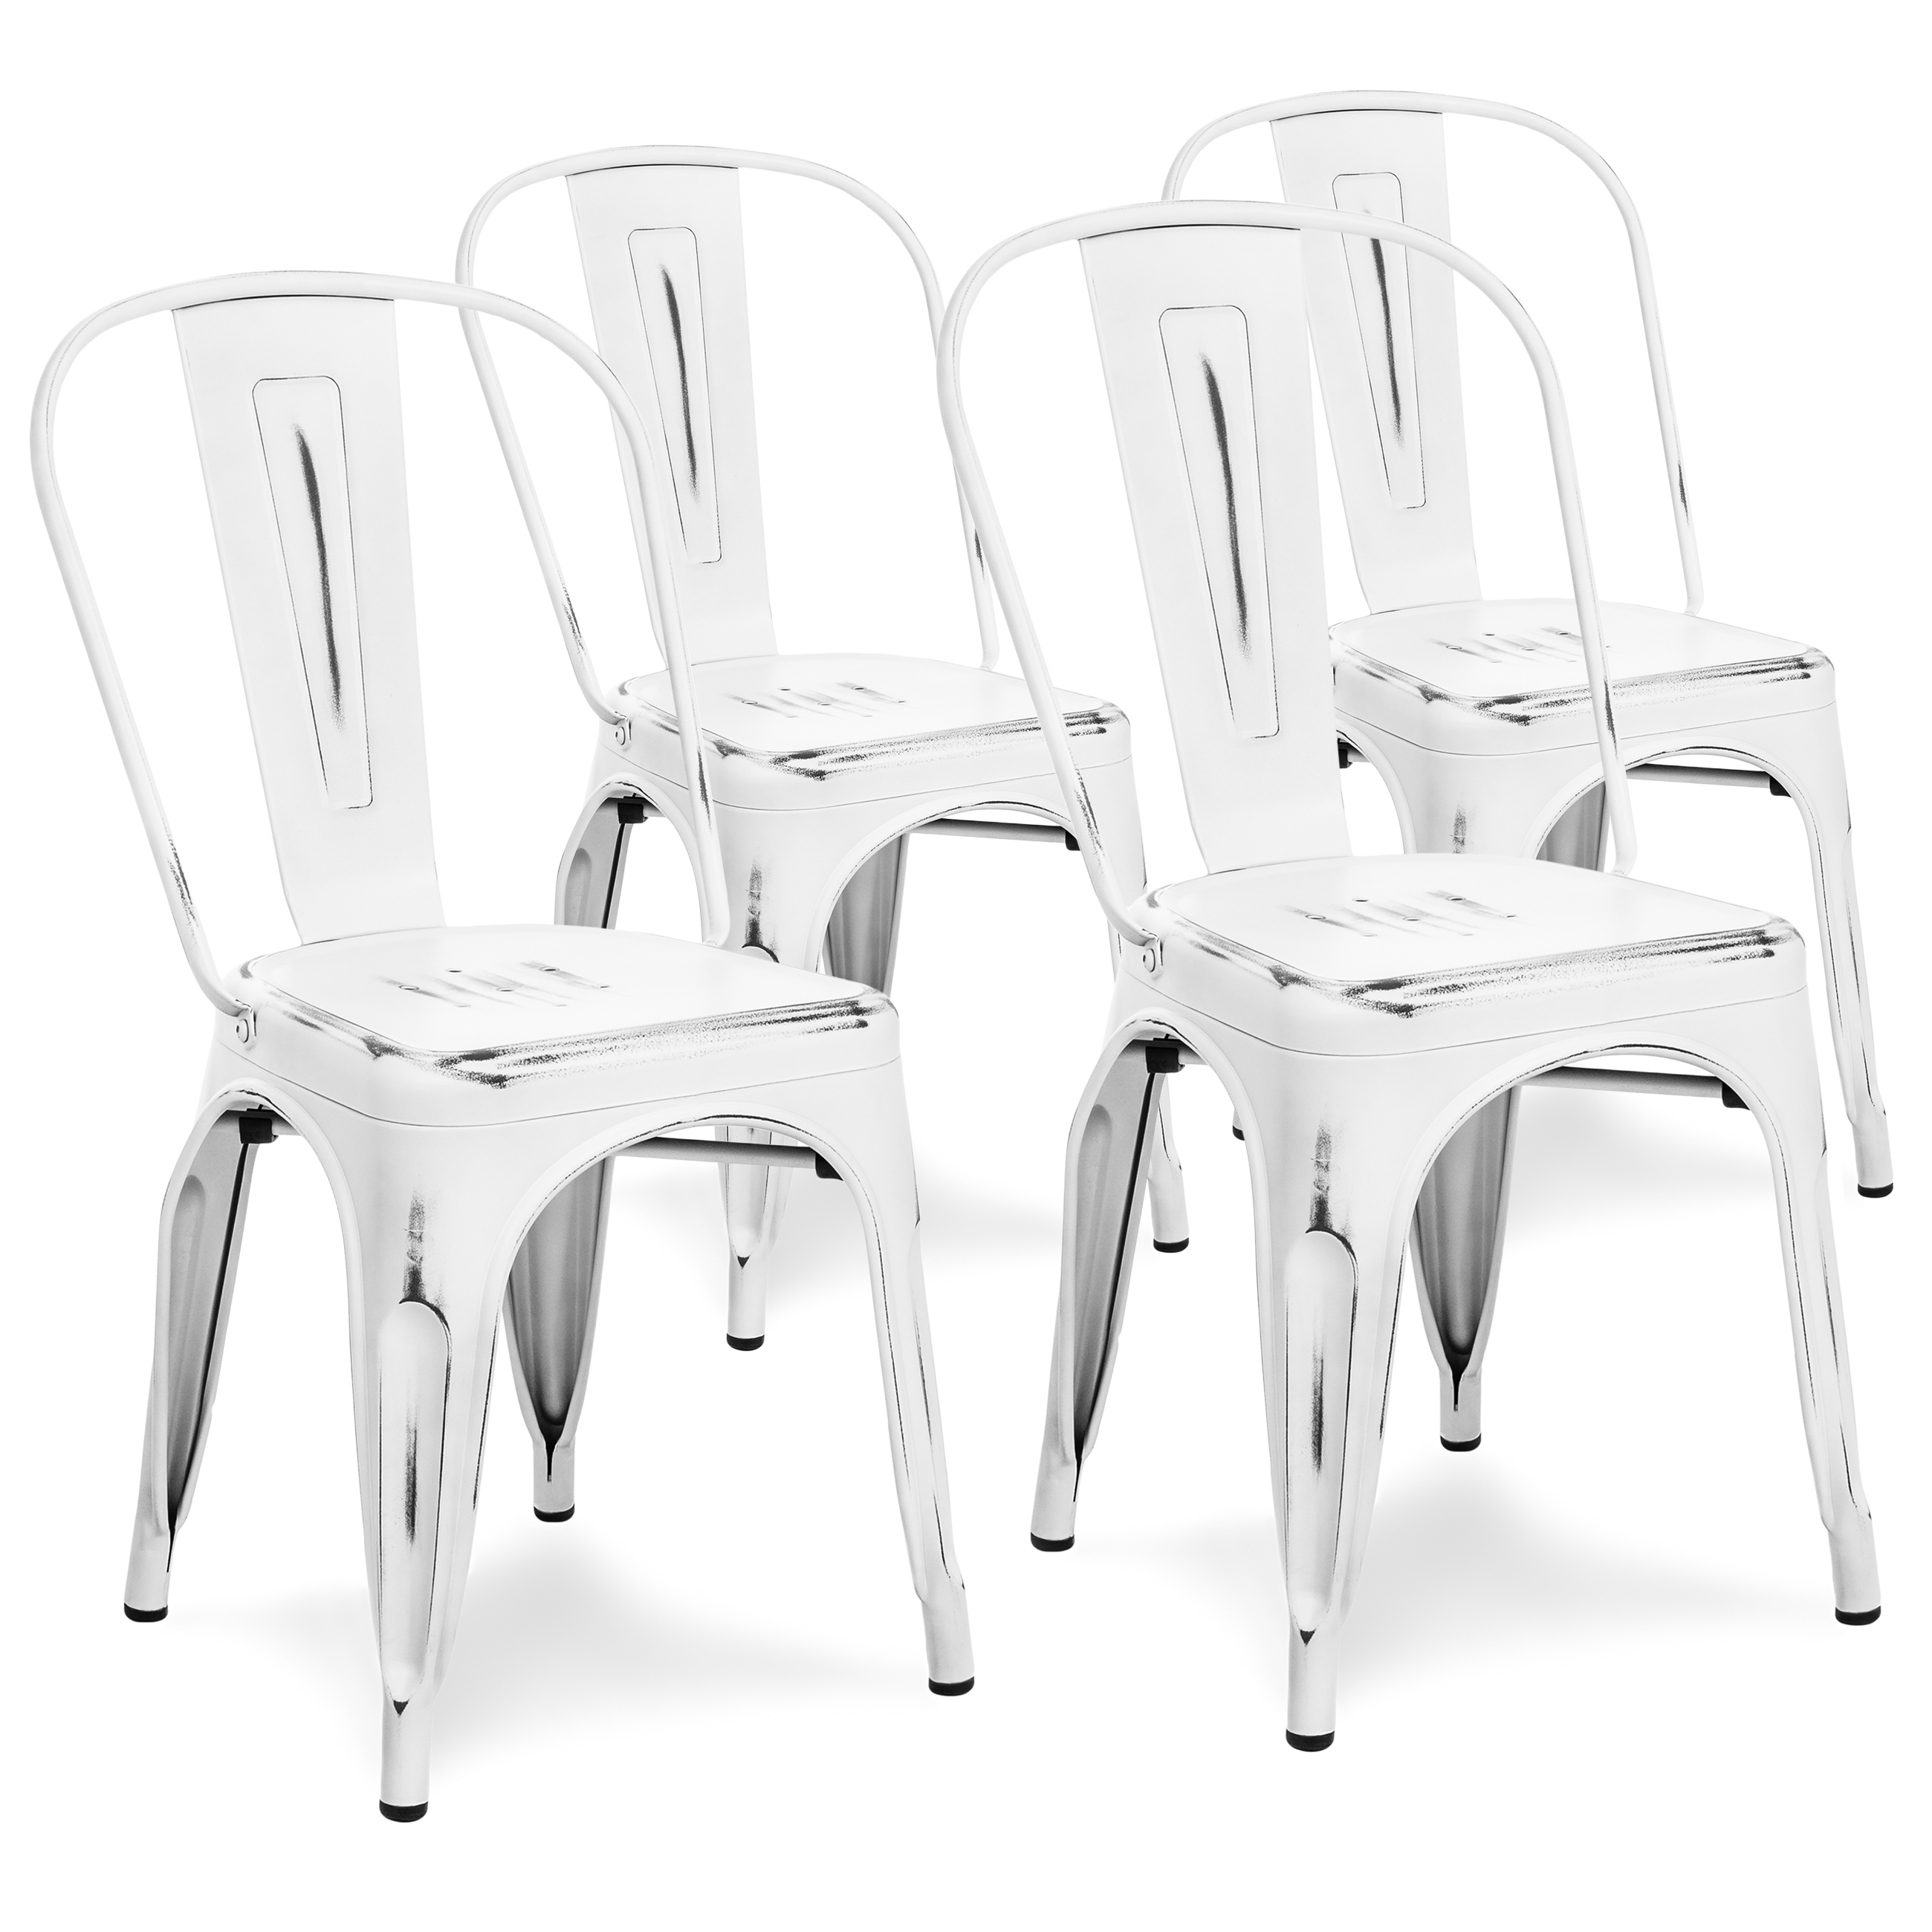 Best Choice Products Set Of 4 Distressed Industrial Metal Dining Side Chairs  (White)   Walmart.com